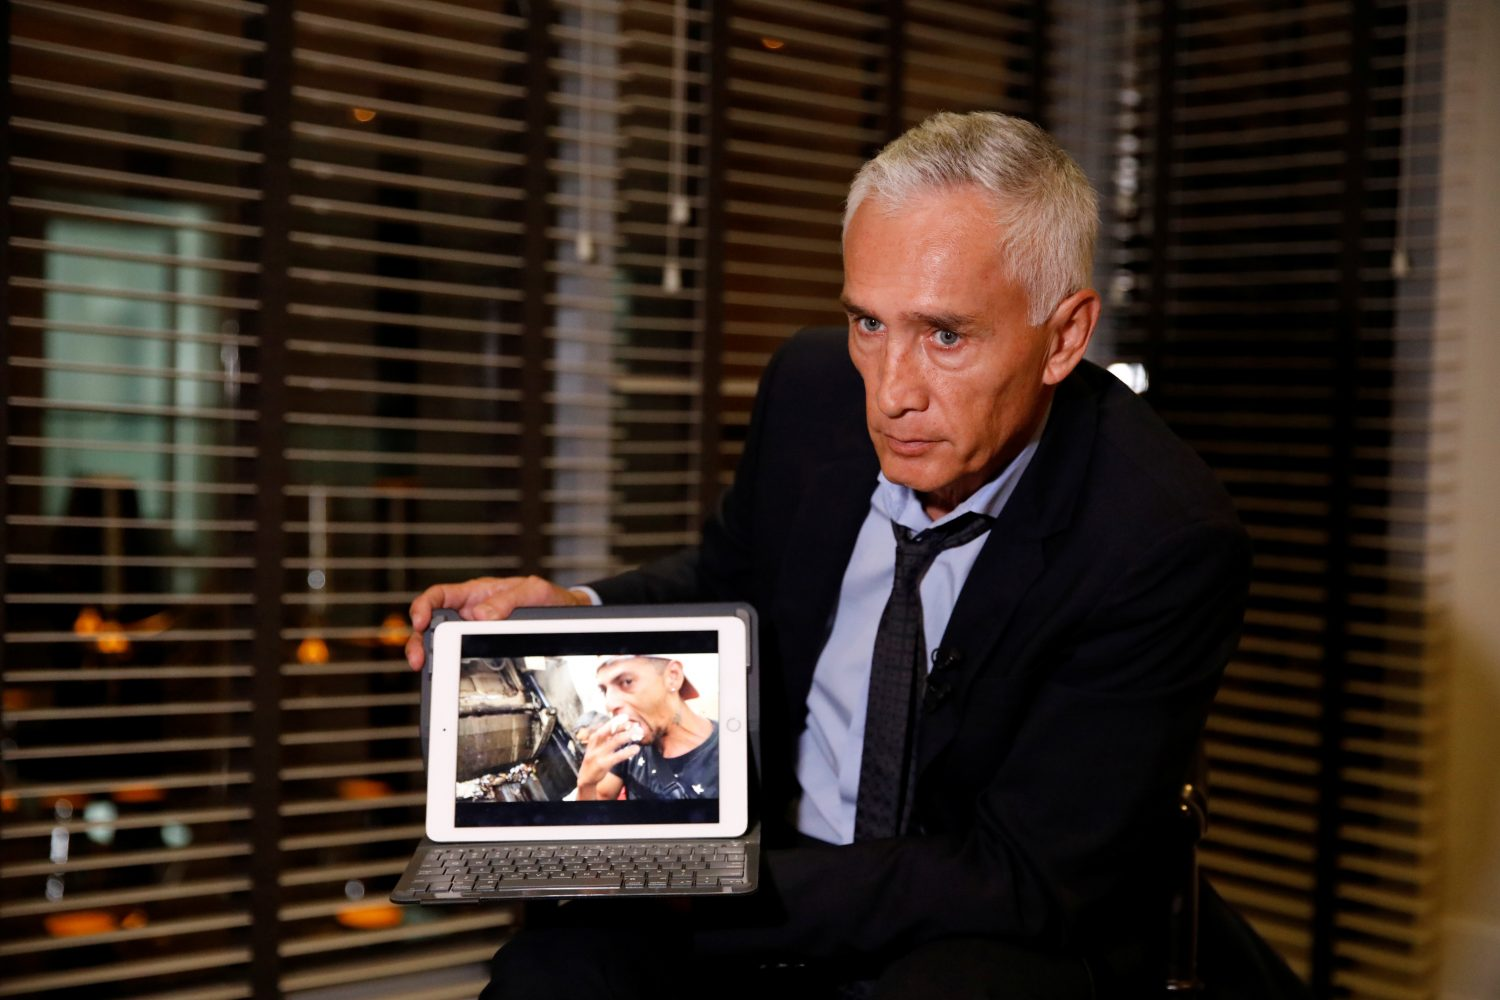 Jorge Ramos, anchor of Spanish-language U.S. television network Univision, shows a video of young Venezuelans eating from a garbage truck, while talking to the media, in Caracas, Venezuela February 25, 2019. REUTERS/Carlos Garcia Rawlins